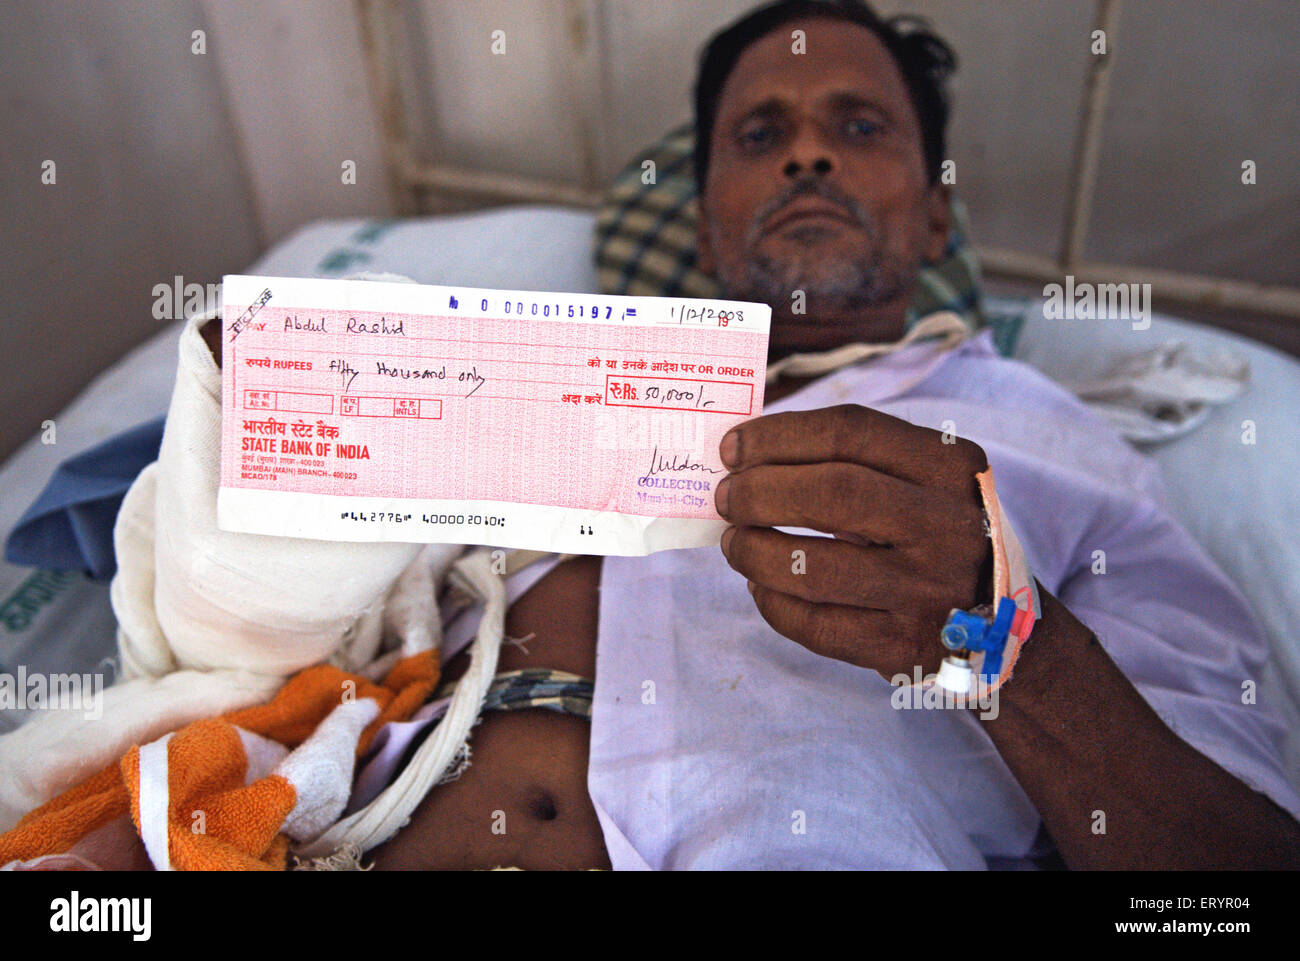 Abdul rashid showing compensation cheque victim of terrorist attack by deccan mujahedeen in Bombay Mumbai - Stock Image